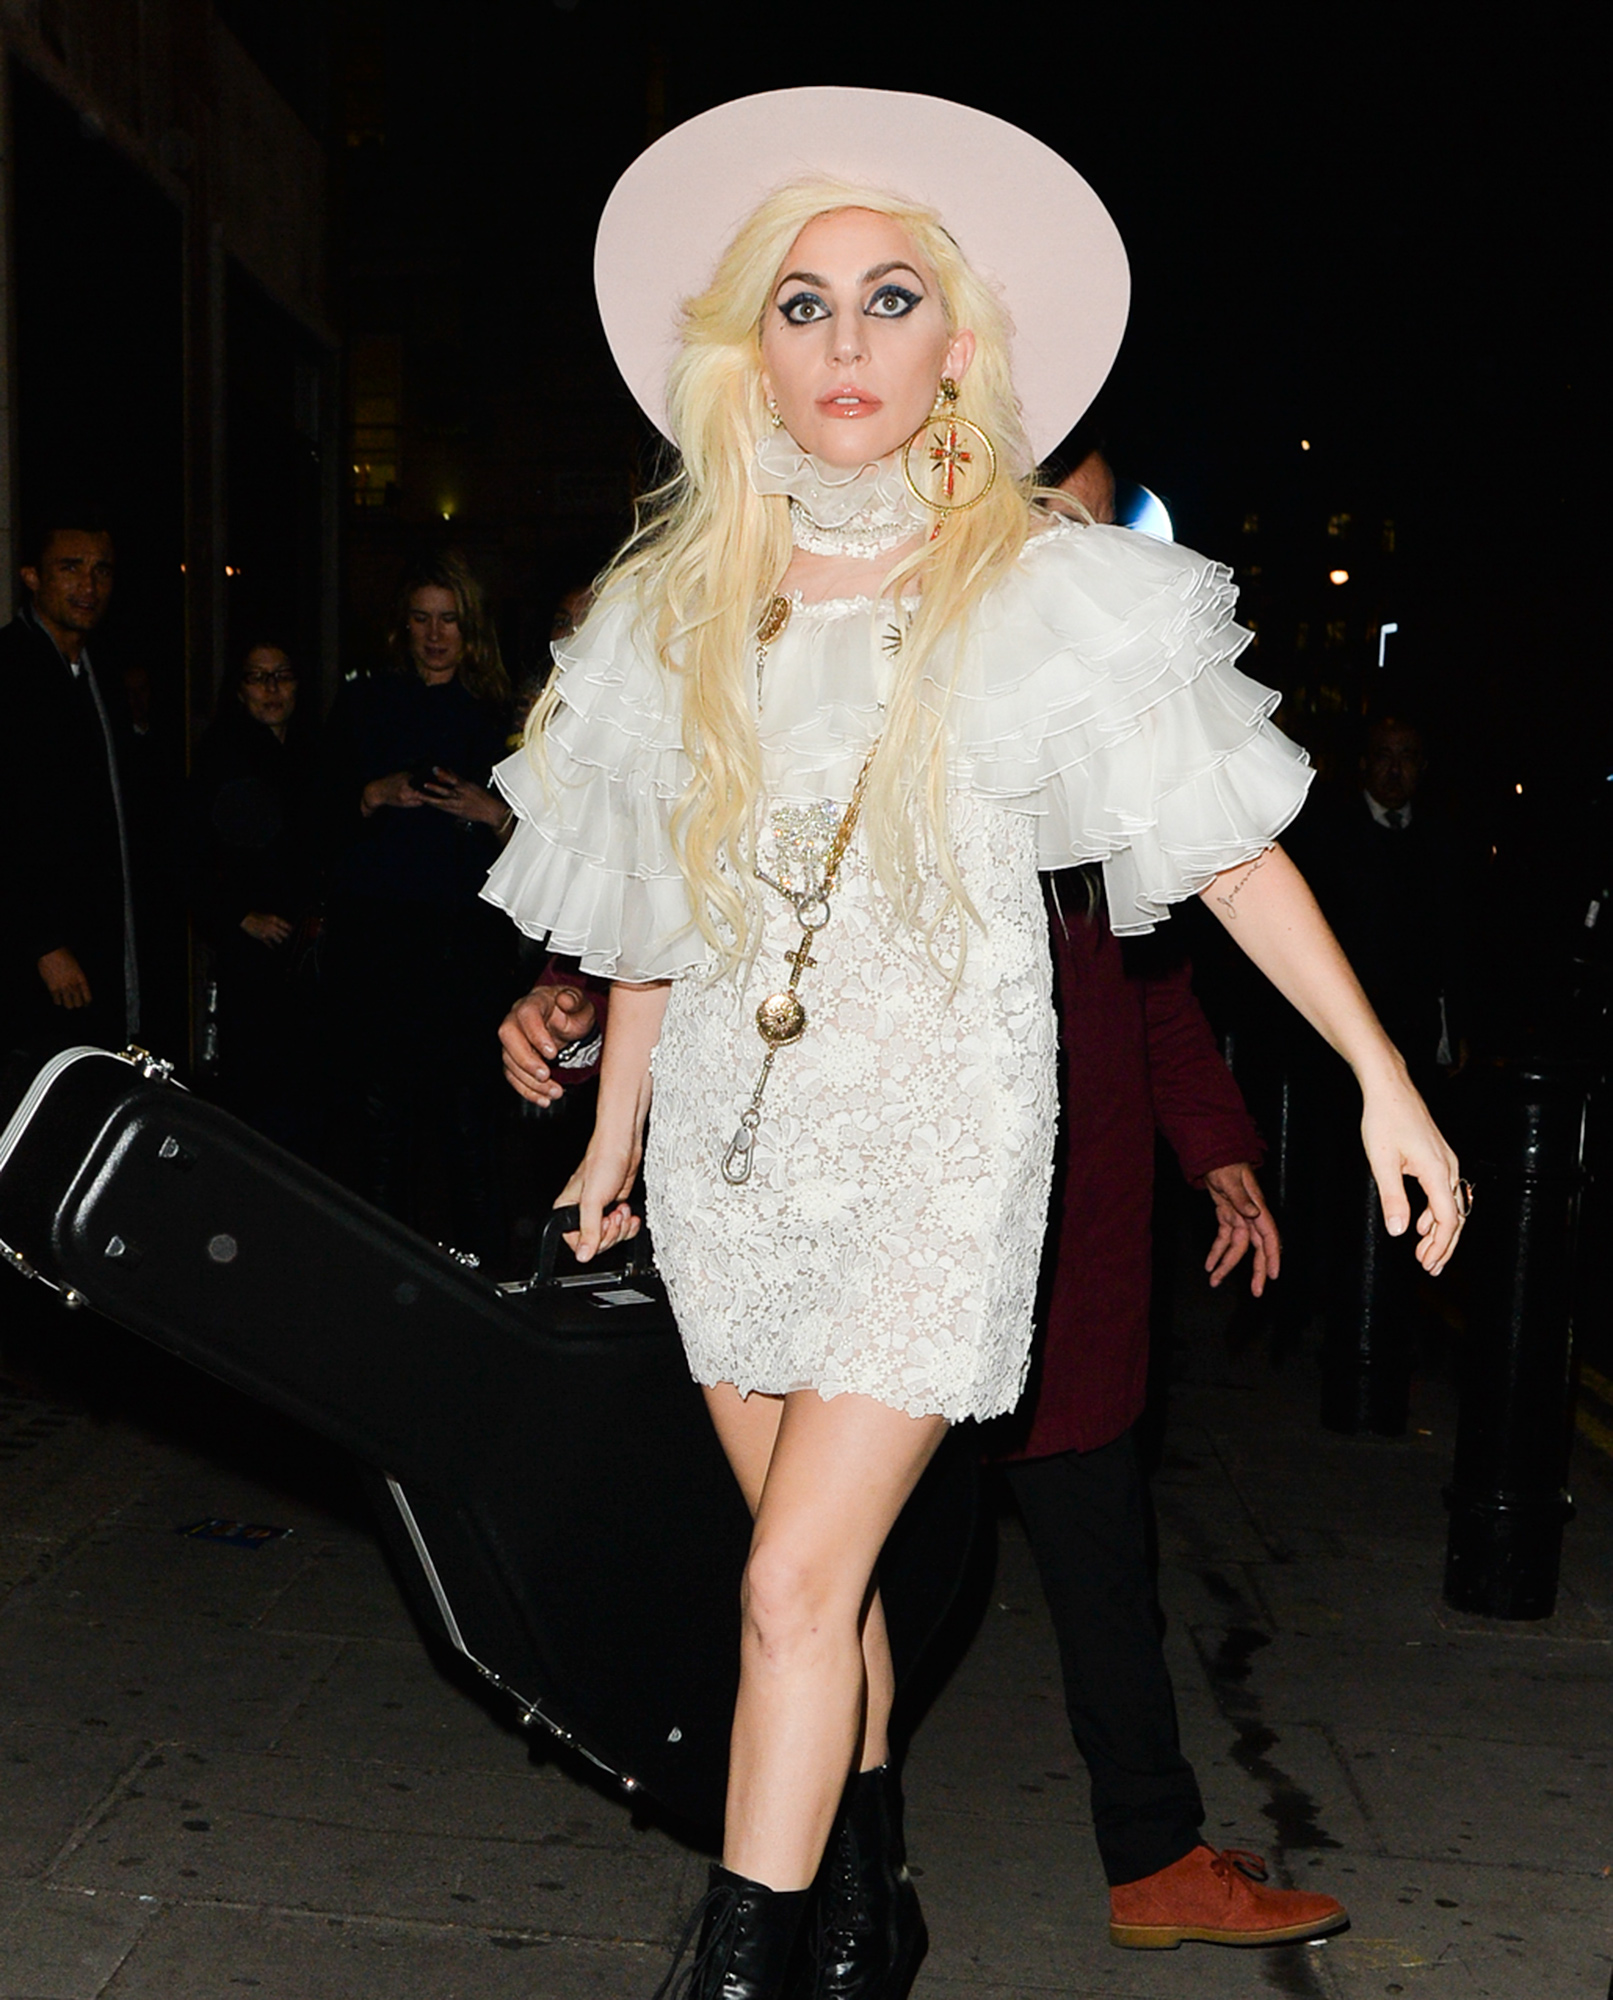 Lady Gaga Rocks The Country Look In London